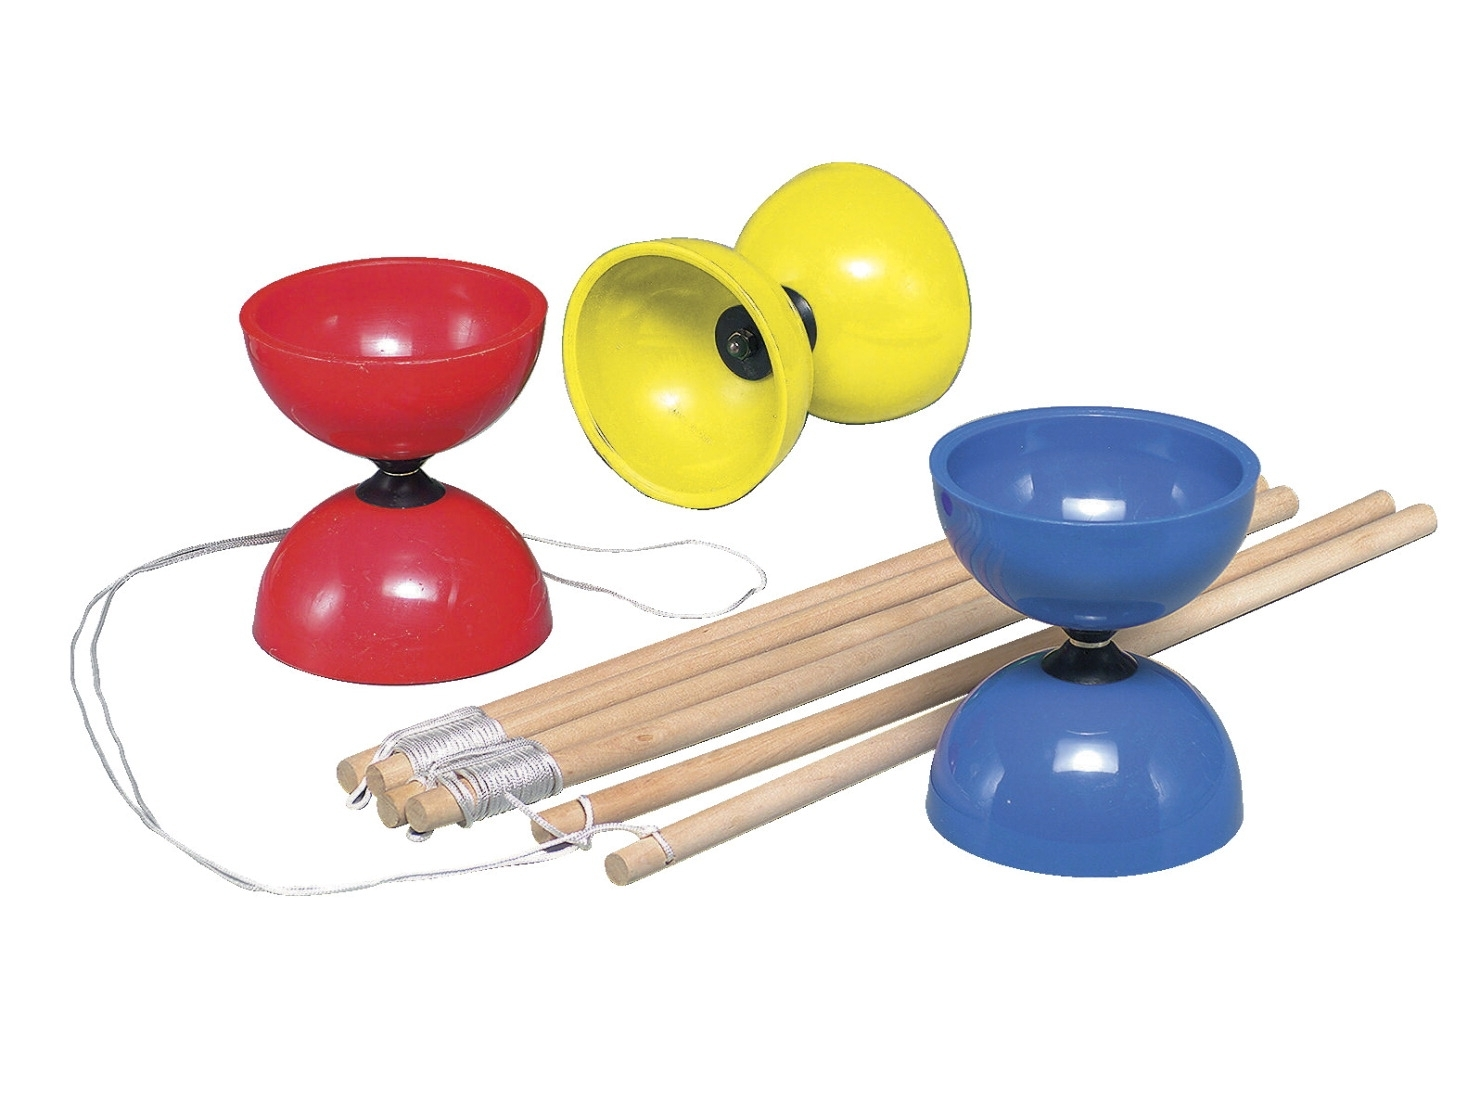 Sports & Fitness Physical Education & Sport Balls Juggling Balls - 004616 - Rskillz Chinese Diablo Pro Toss-and-catch Game 004616